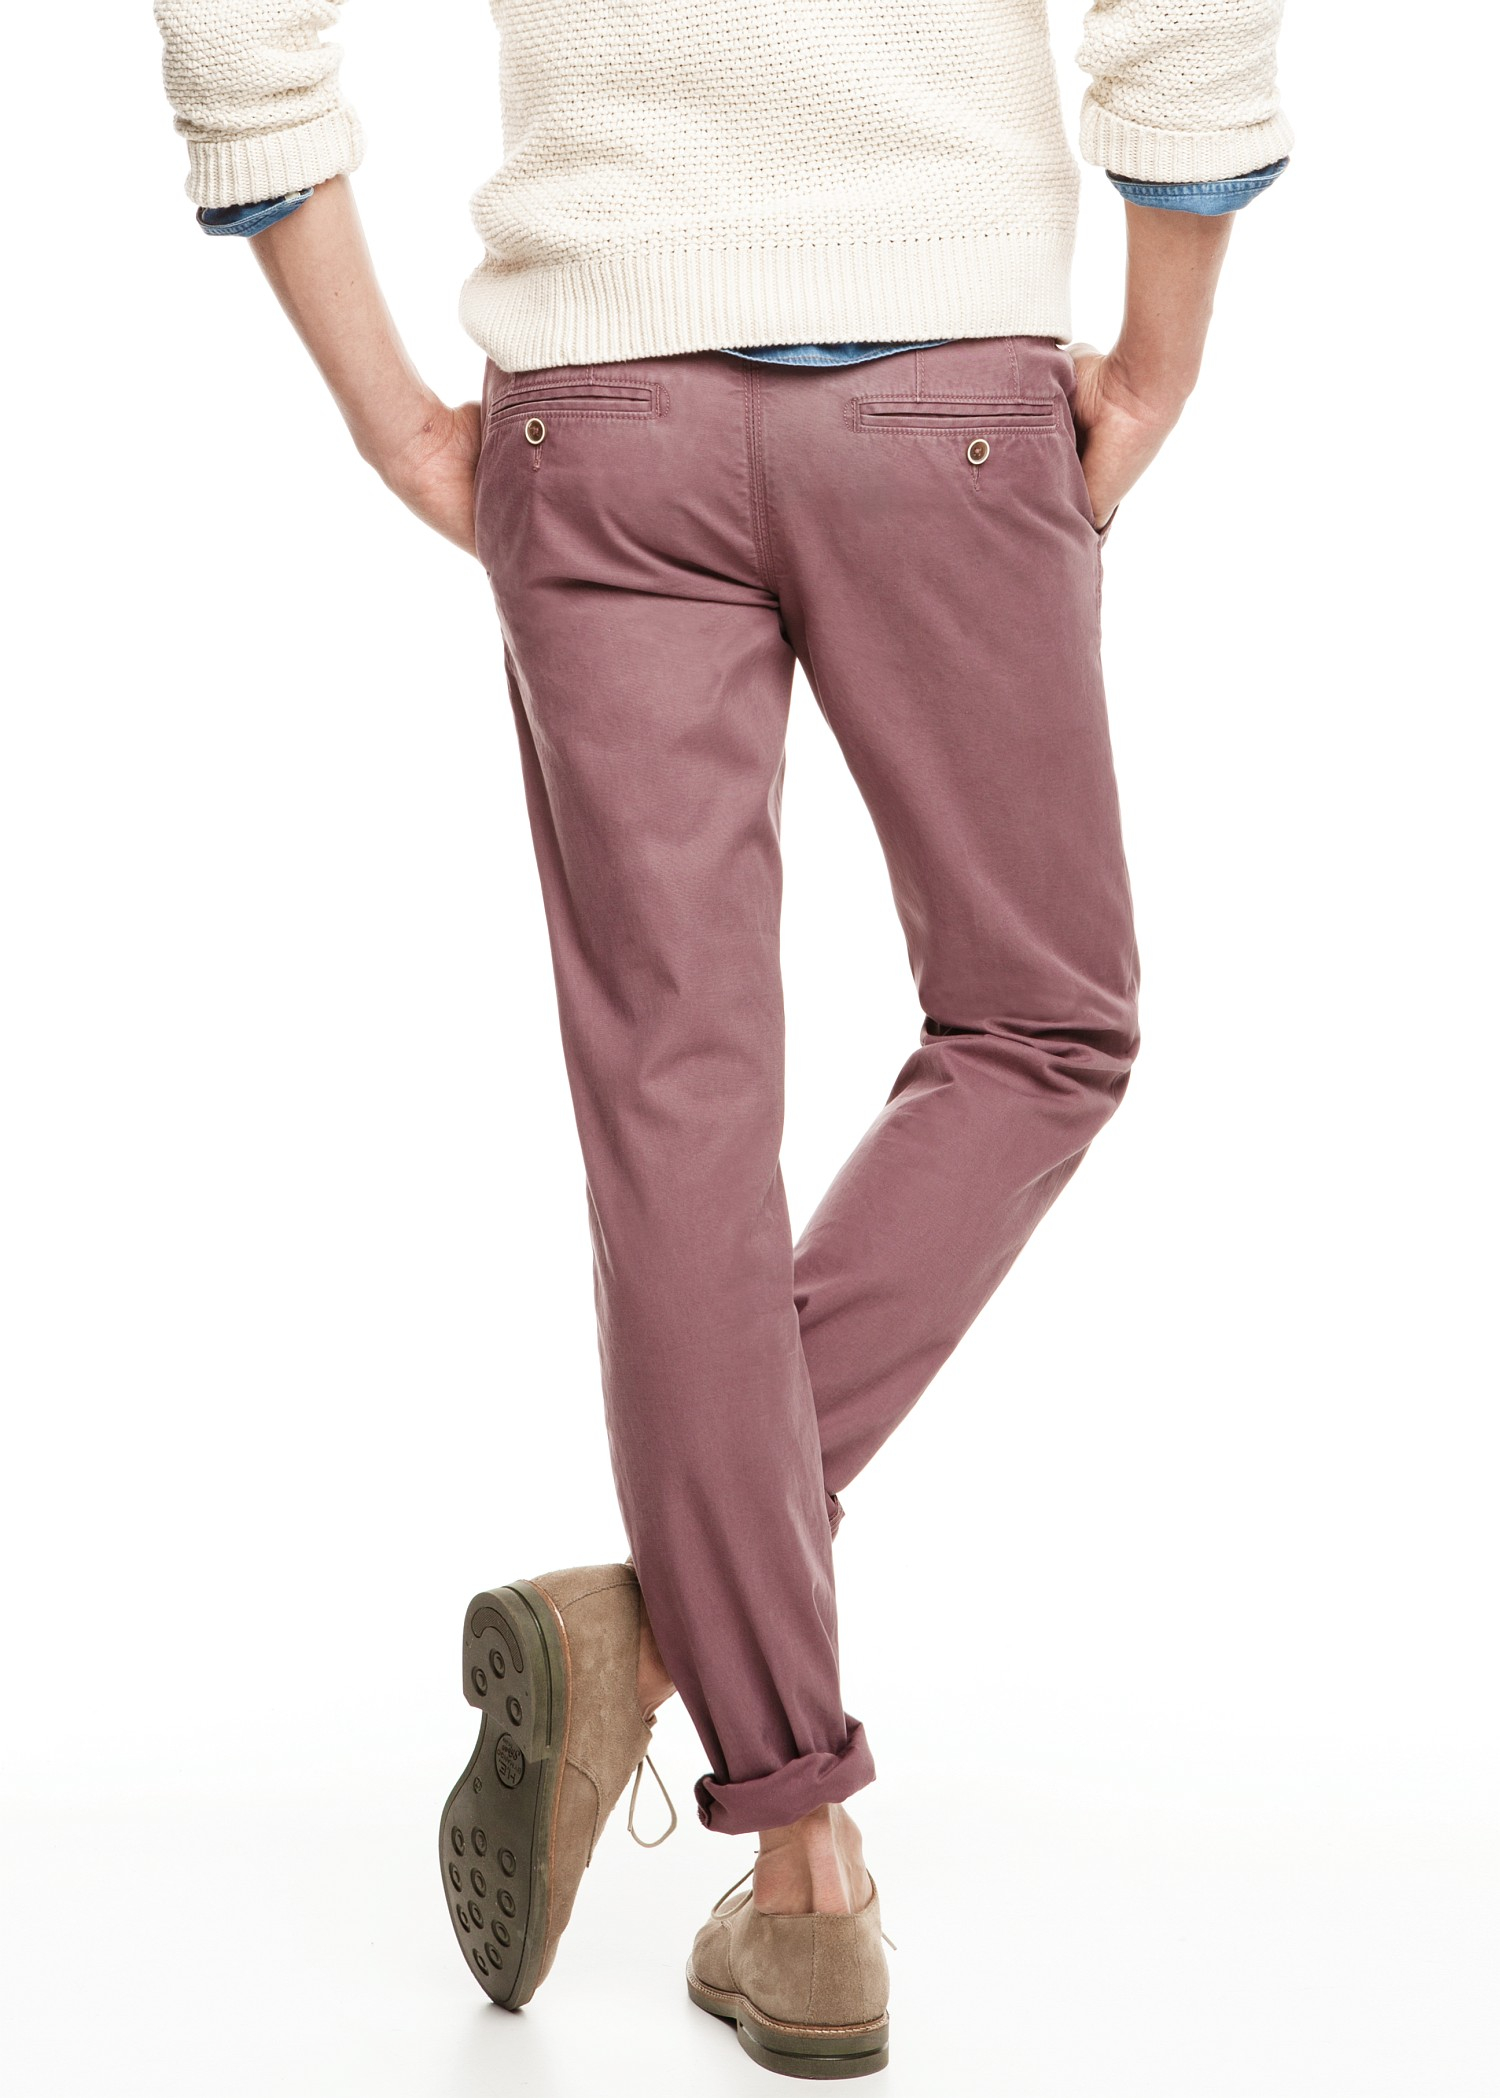 Men's chino pants are semi formal pants that are very versatile. They tend to have a slimmer fit, which gives them a more formal look. Chino can come in a large range of colors, and have hidden pockets.